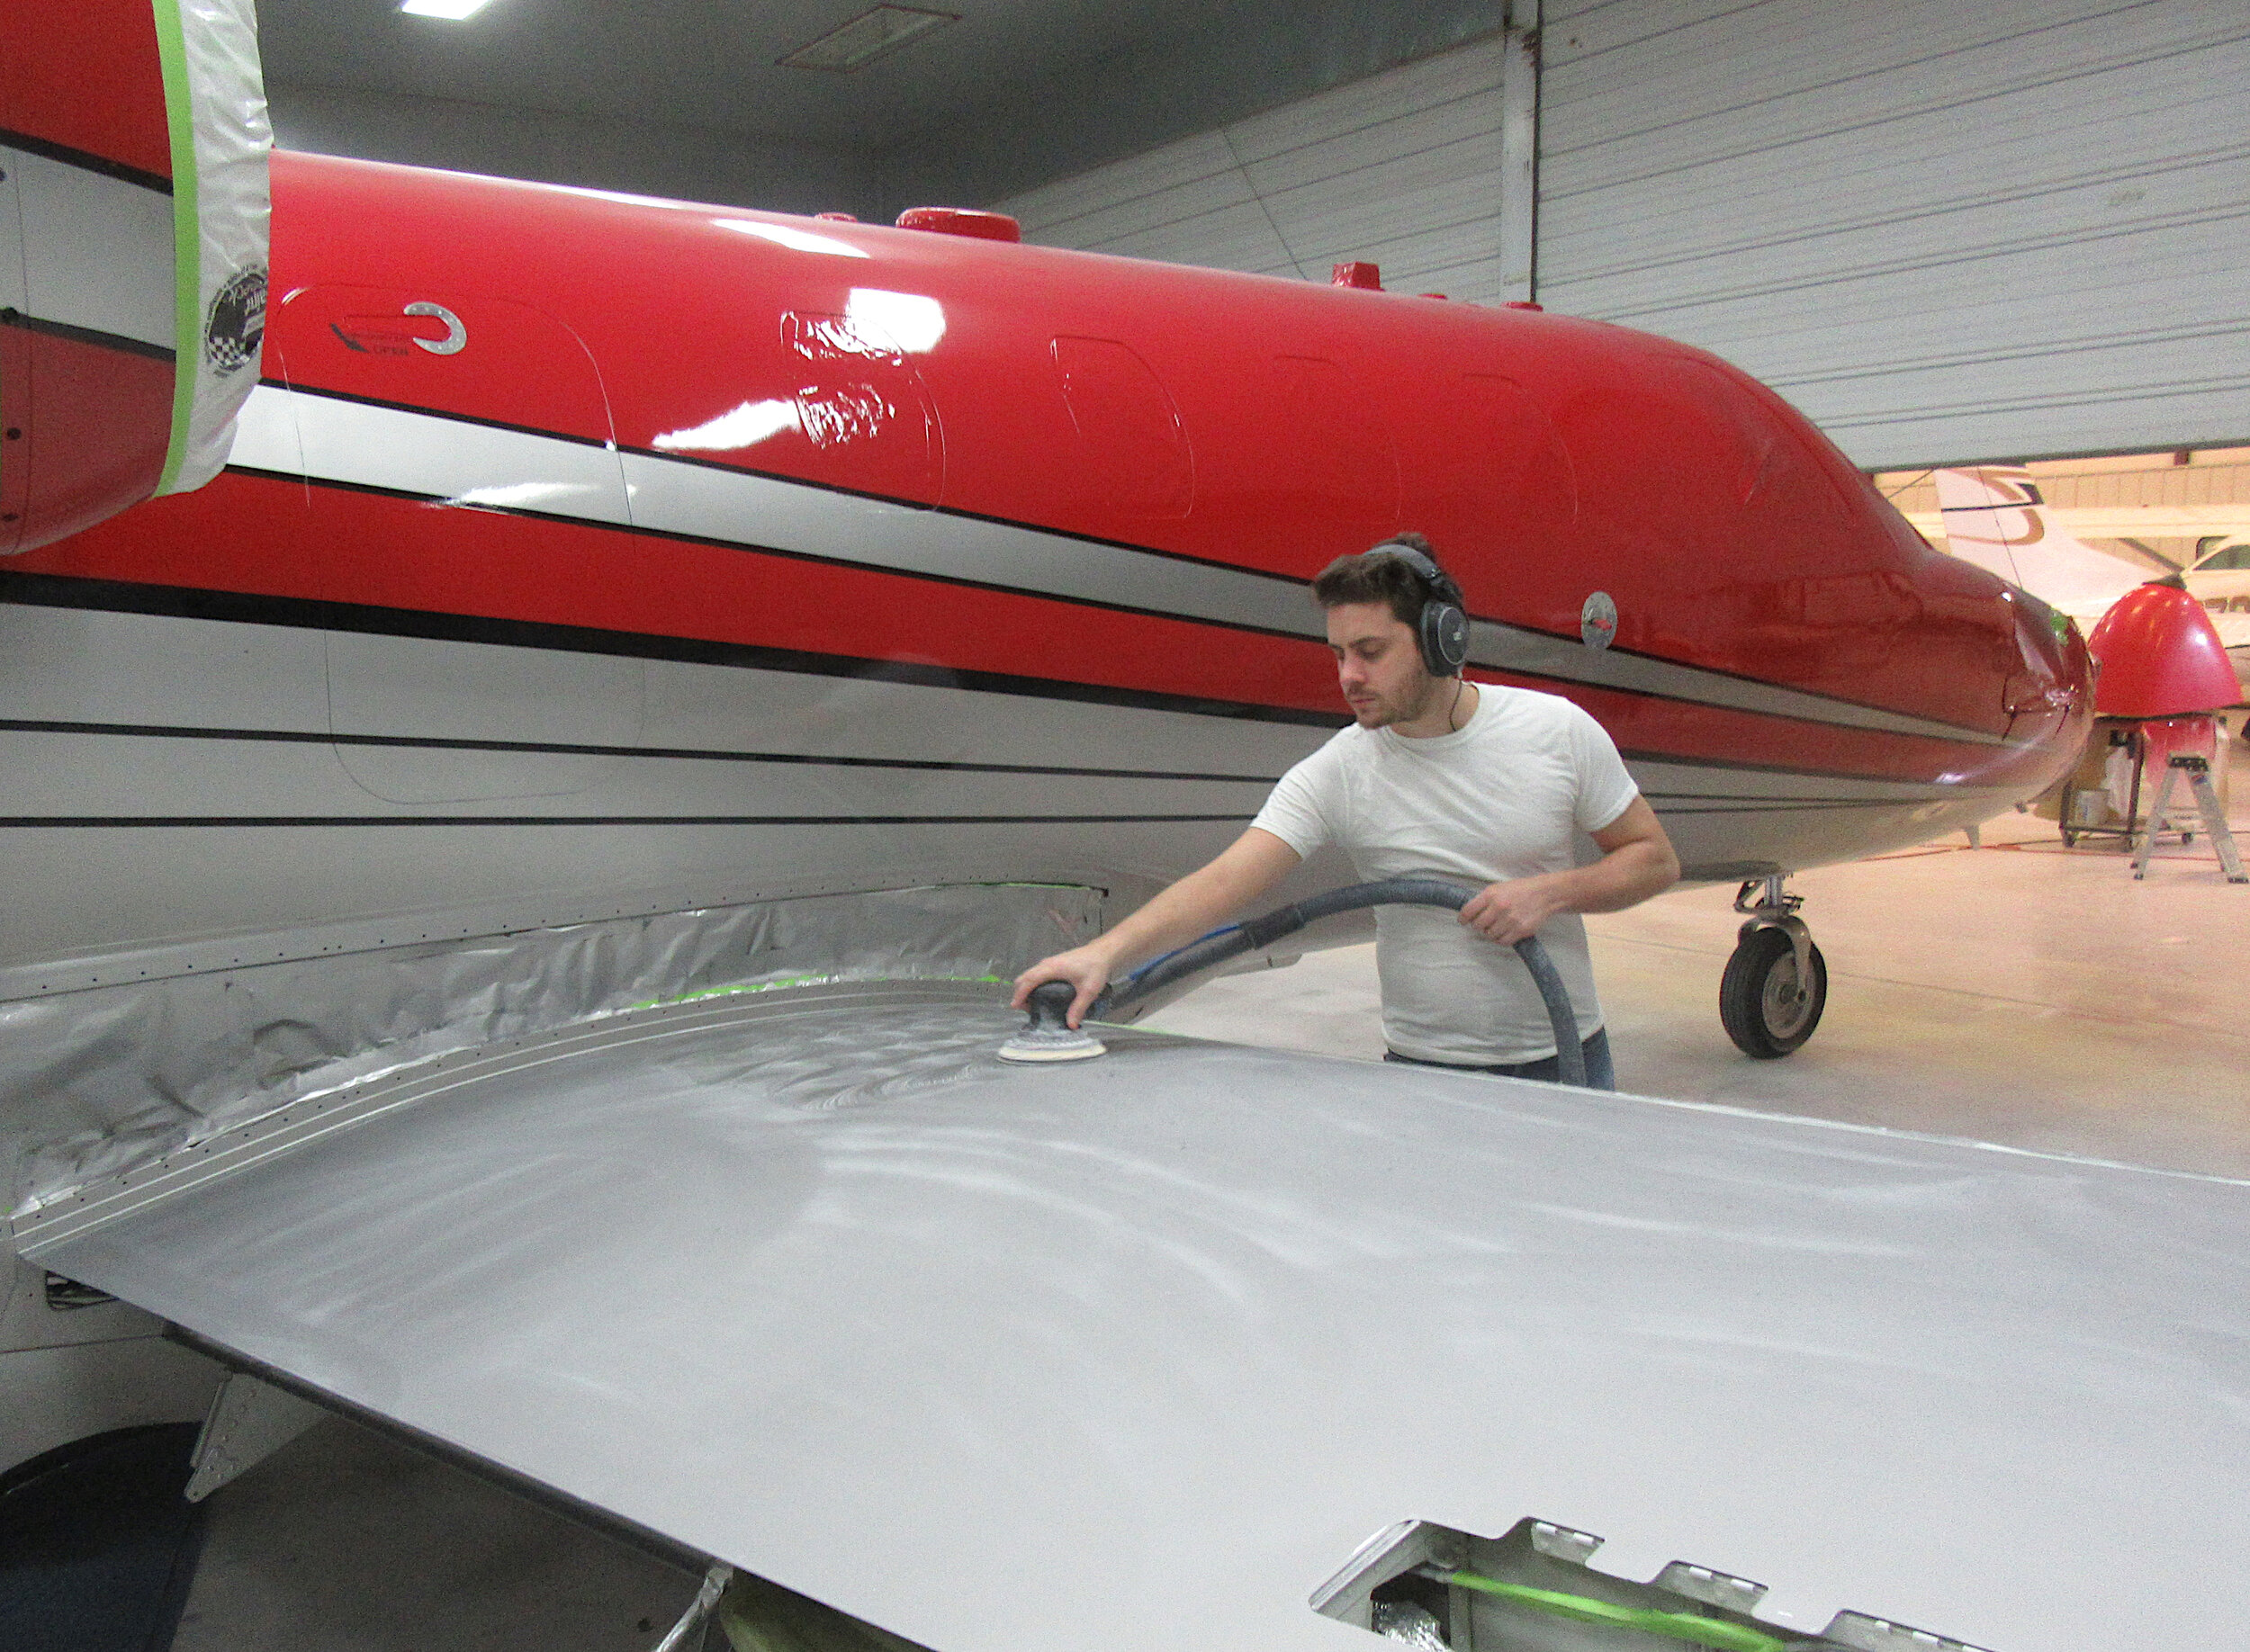 7. Extra Services - A. Pro-SealB. Wetsand & BuffC. InteriorD. Fiberglass RepairsE. Sheet Metal RepairsF. Install WindowsG. Re-Condition De-Icing BootsH. Replace Raydome / PPF Film